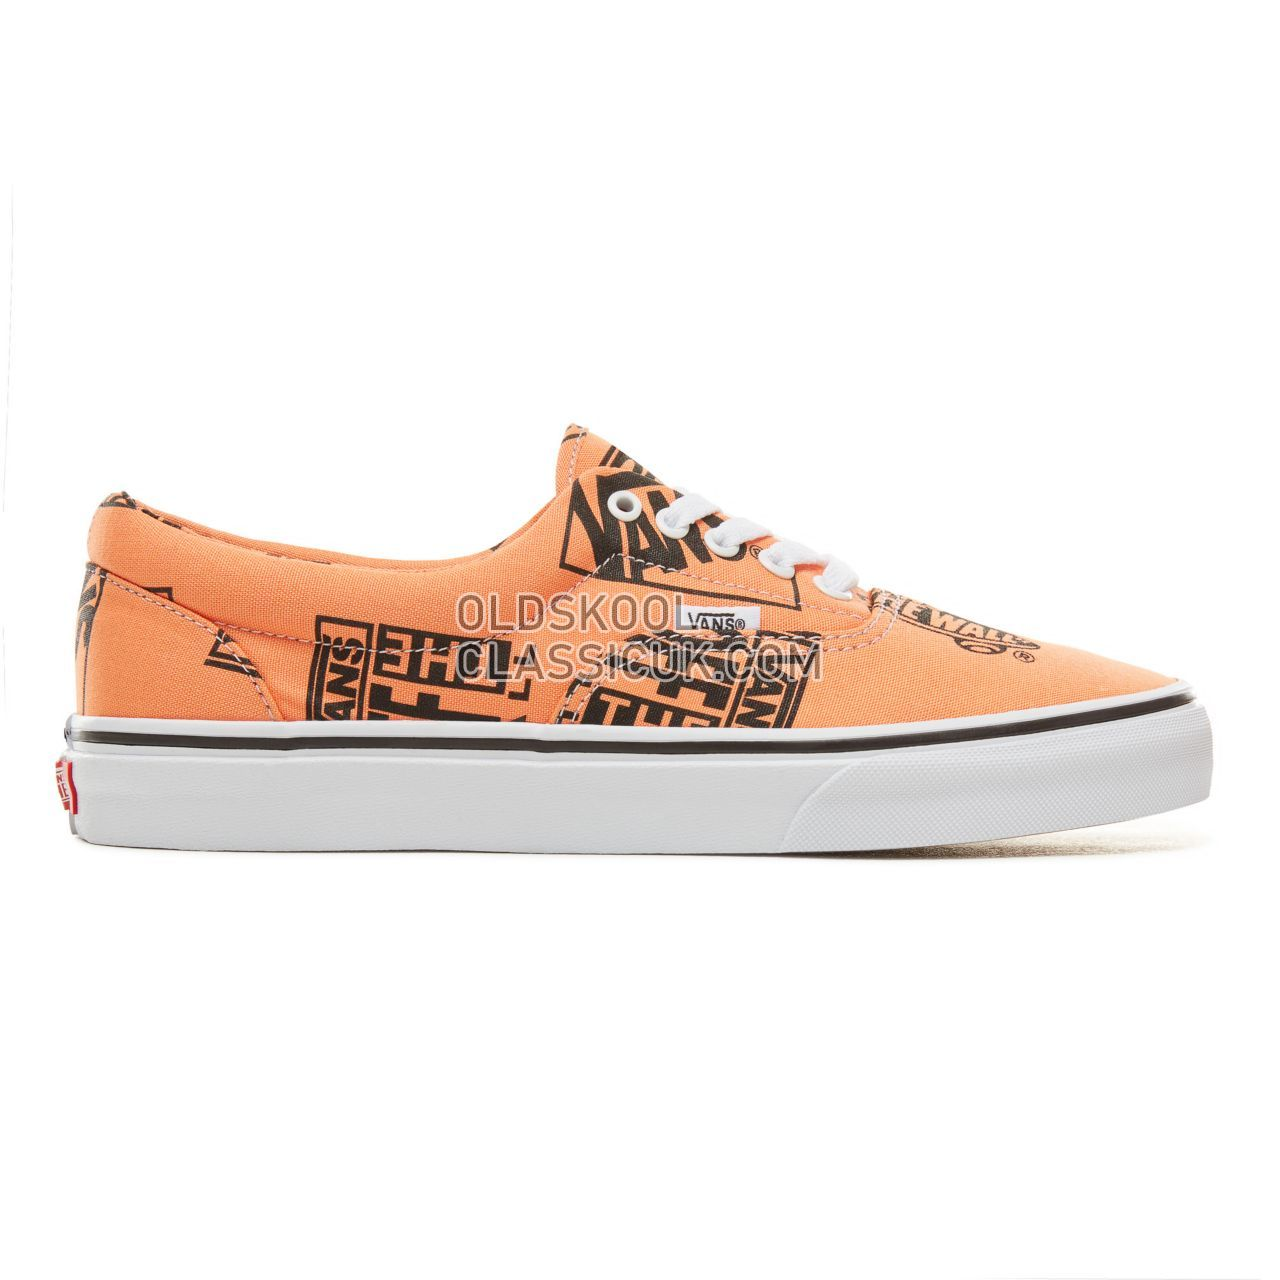 Vans Logo Mix Era Sneakers Mens (Logo Mix) Tangerine/Black VA38FRU8K Shoes